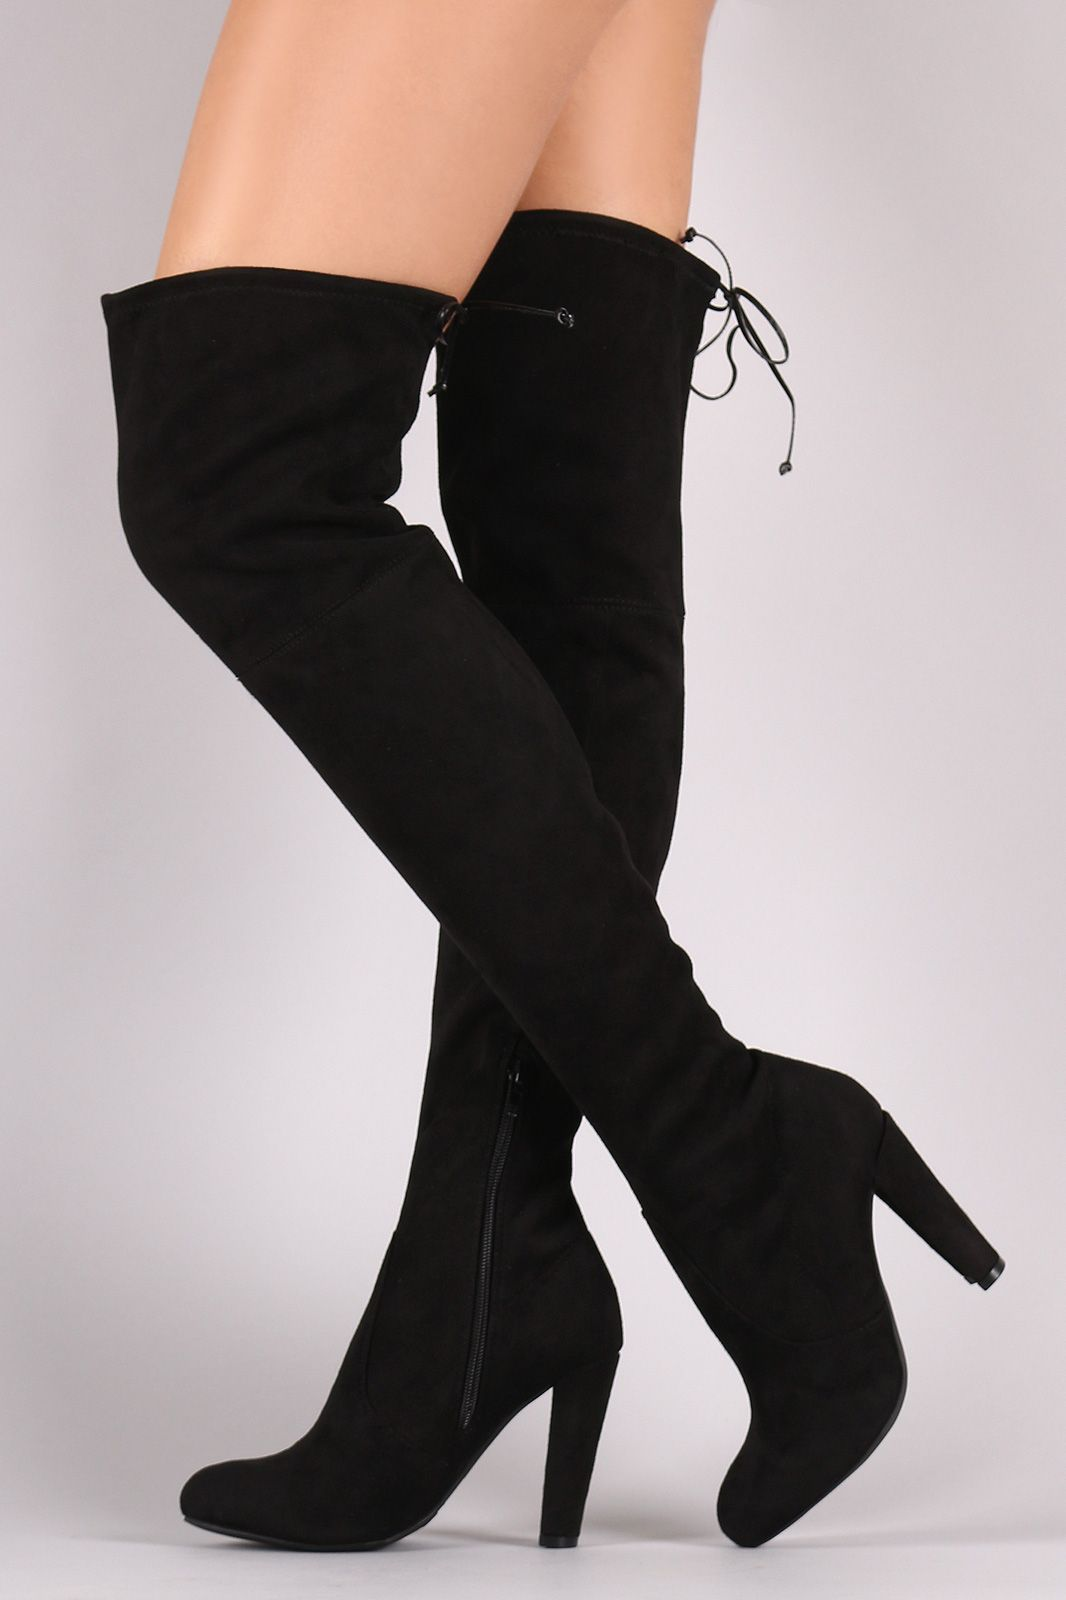 07e8c36ecf6a Shop Wild Diva Lounge Suede Over The Knee Boots! These boots are over the  knee silhouette with a slouchy shaft and a self tie string at top ...